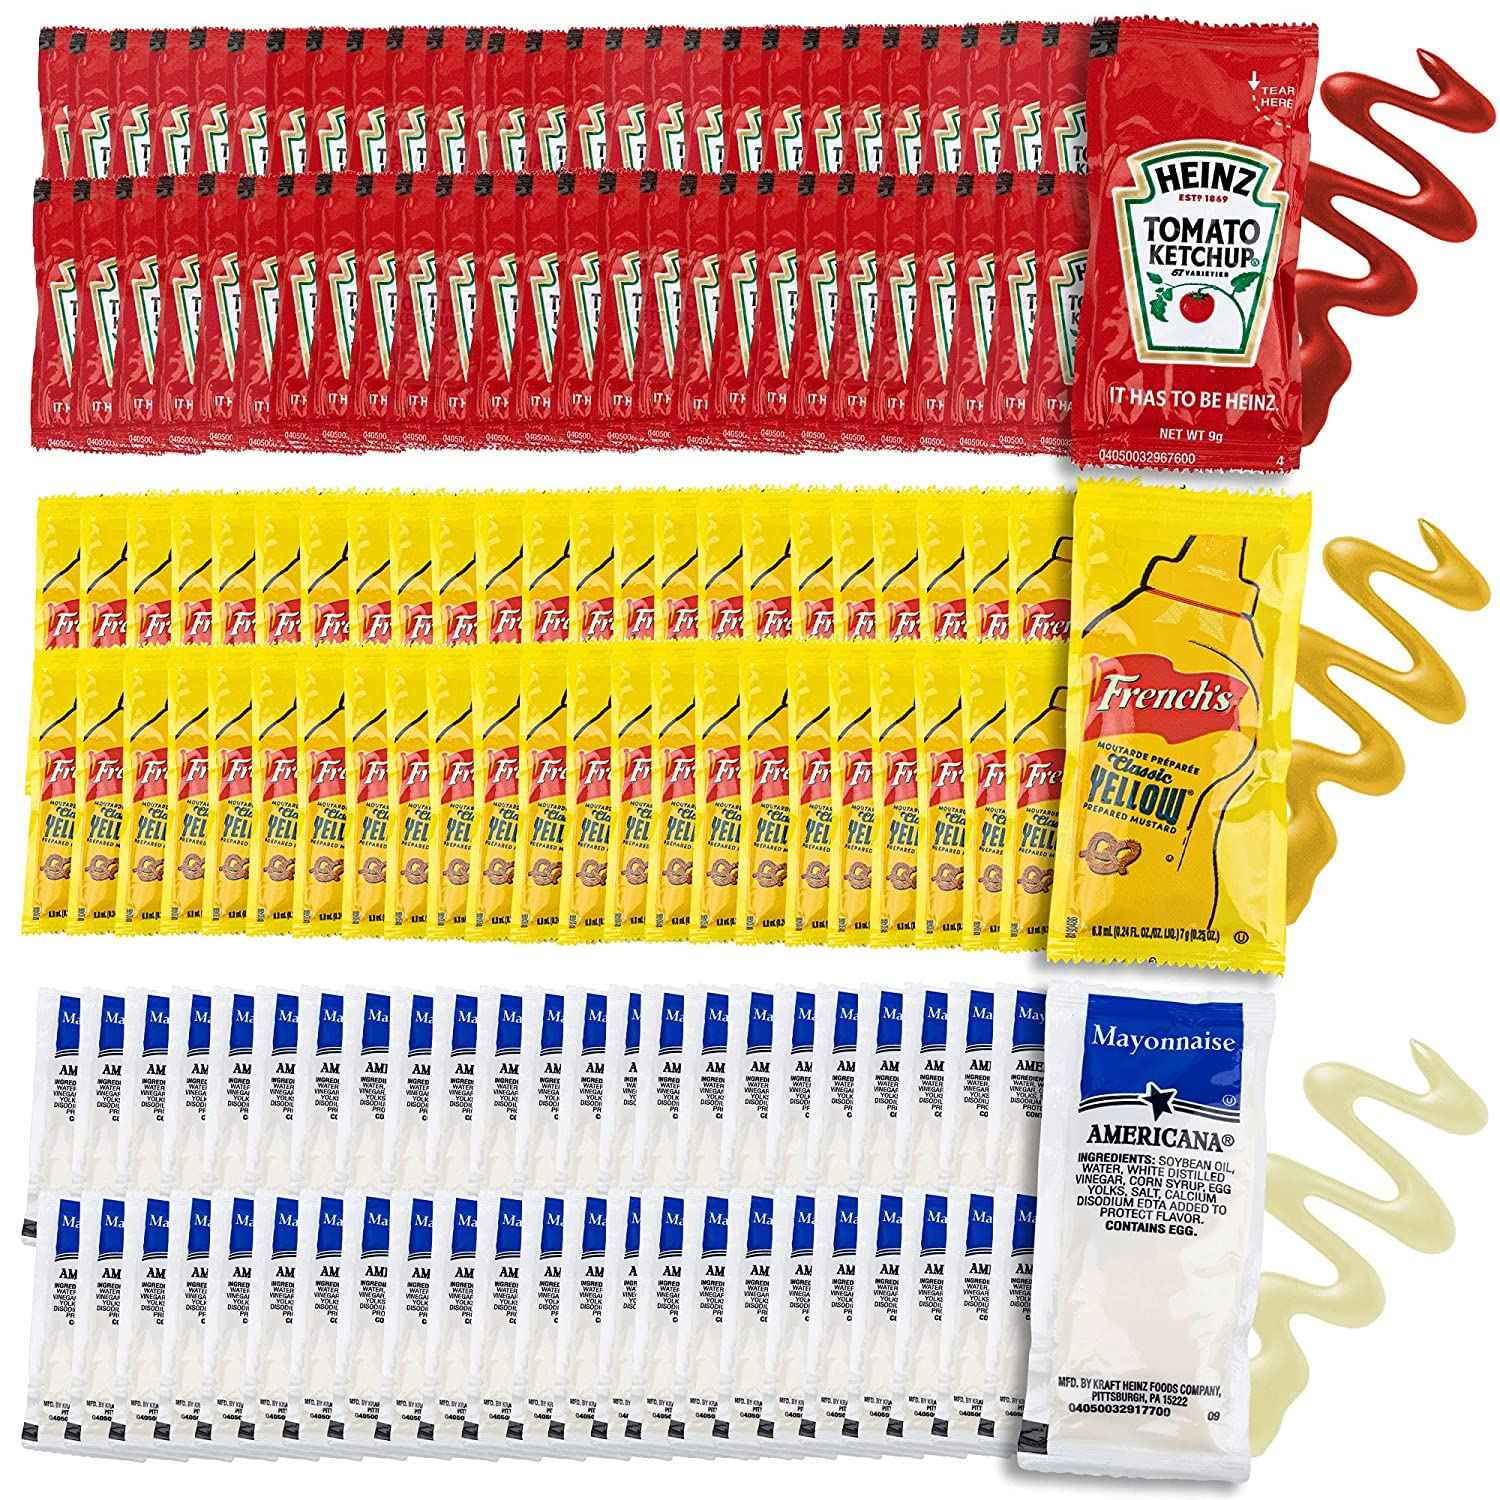 Grab-n-Go Condiment Packs Max 58% OFF - Fees free!! 50 Single Serve Ket Pouches Each: of